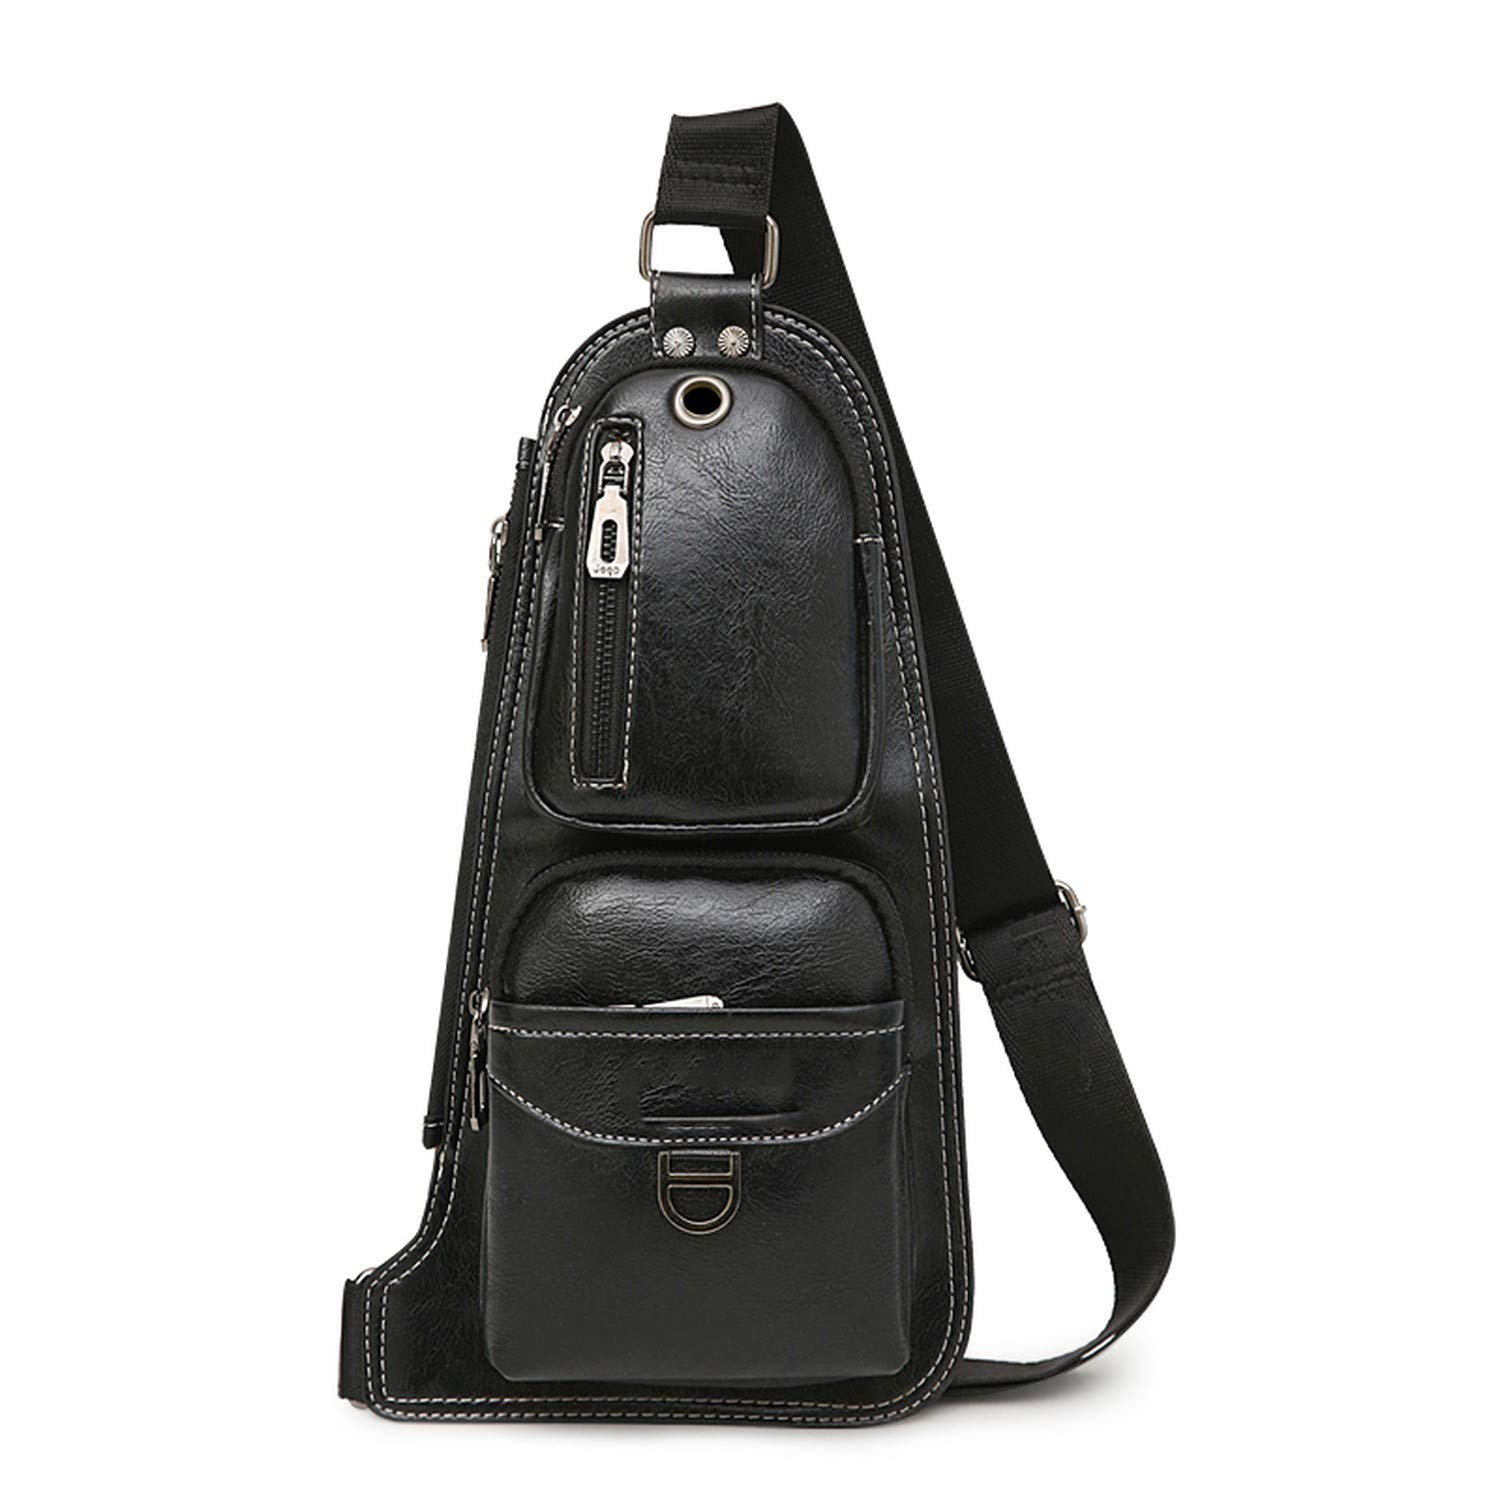 Men Messenger Bags New Hot Crossbody Shoulder Bag Famous Mans Leather Sling Chest Bag Casual 6196